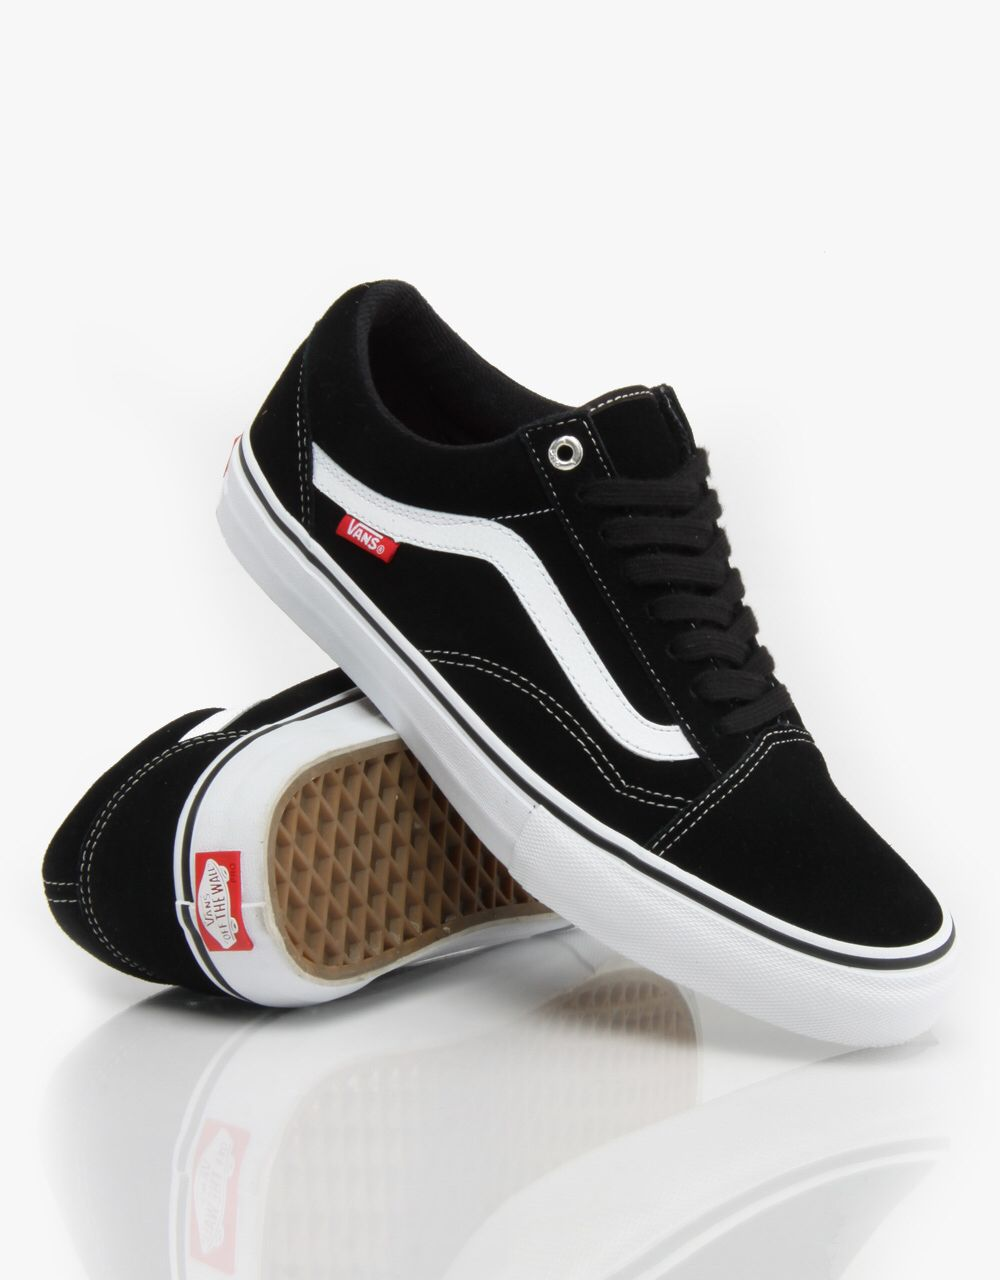 1c325eaad0a Vans old skool pro with black laces